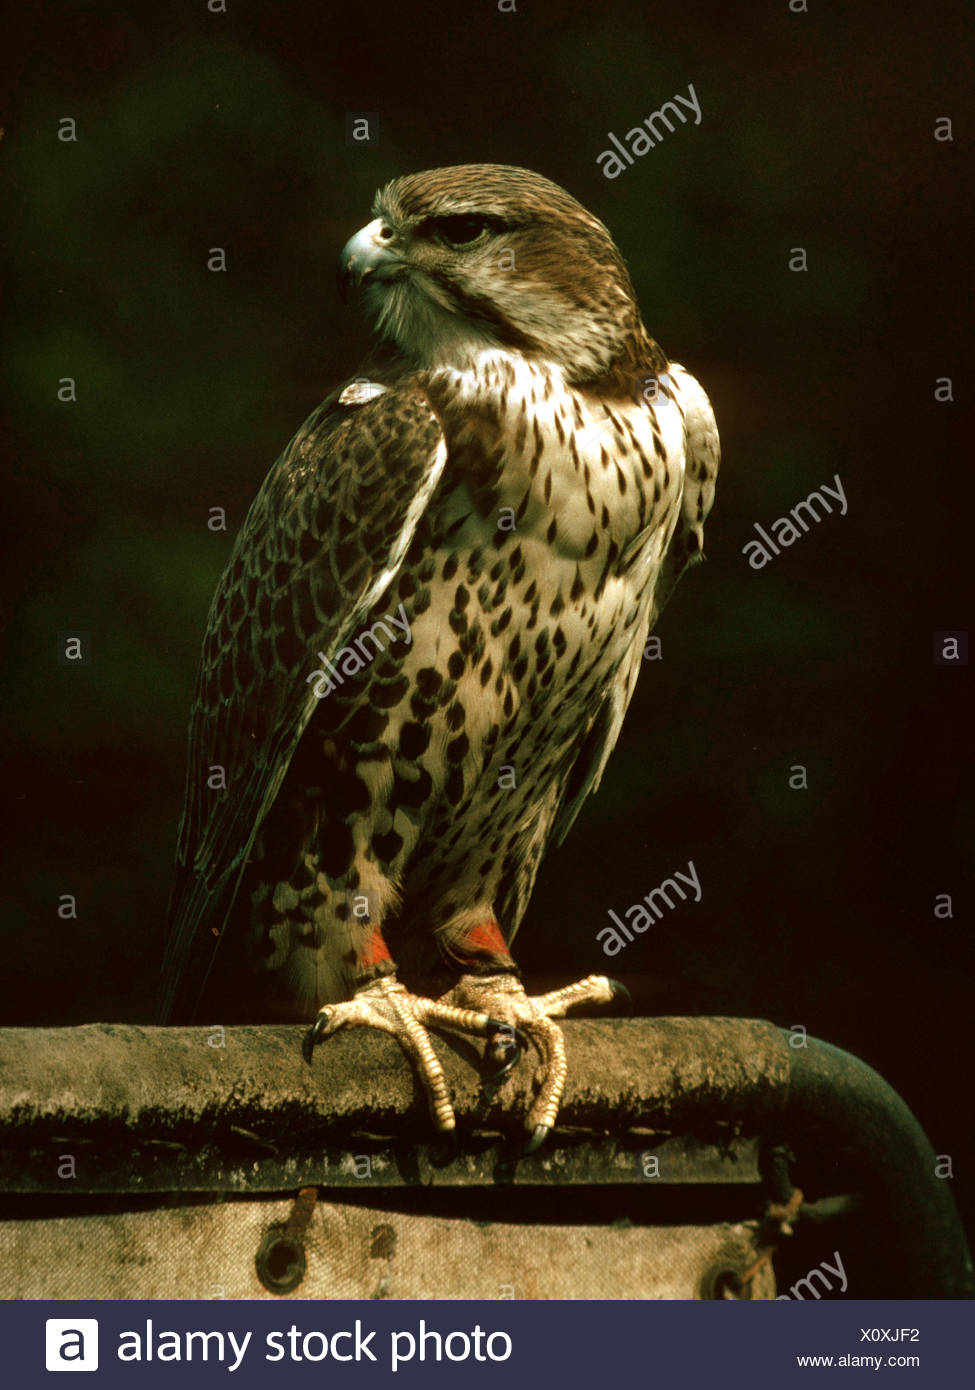 lanner falcon (Falco biarmicus), sitting on a bar - Stock Image